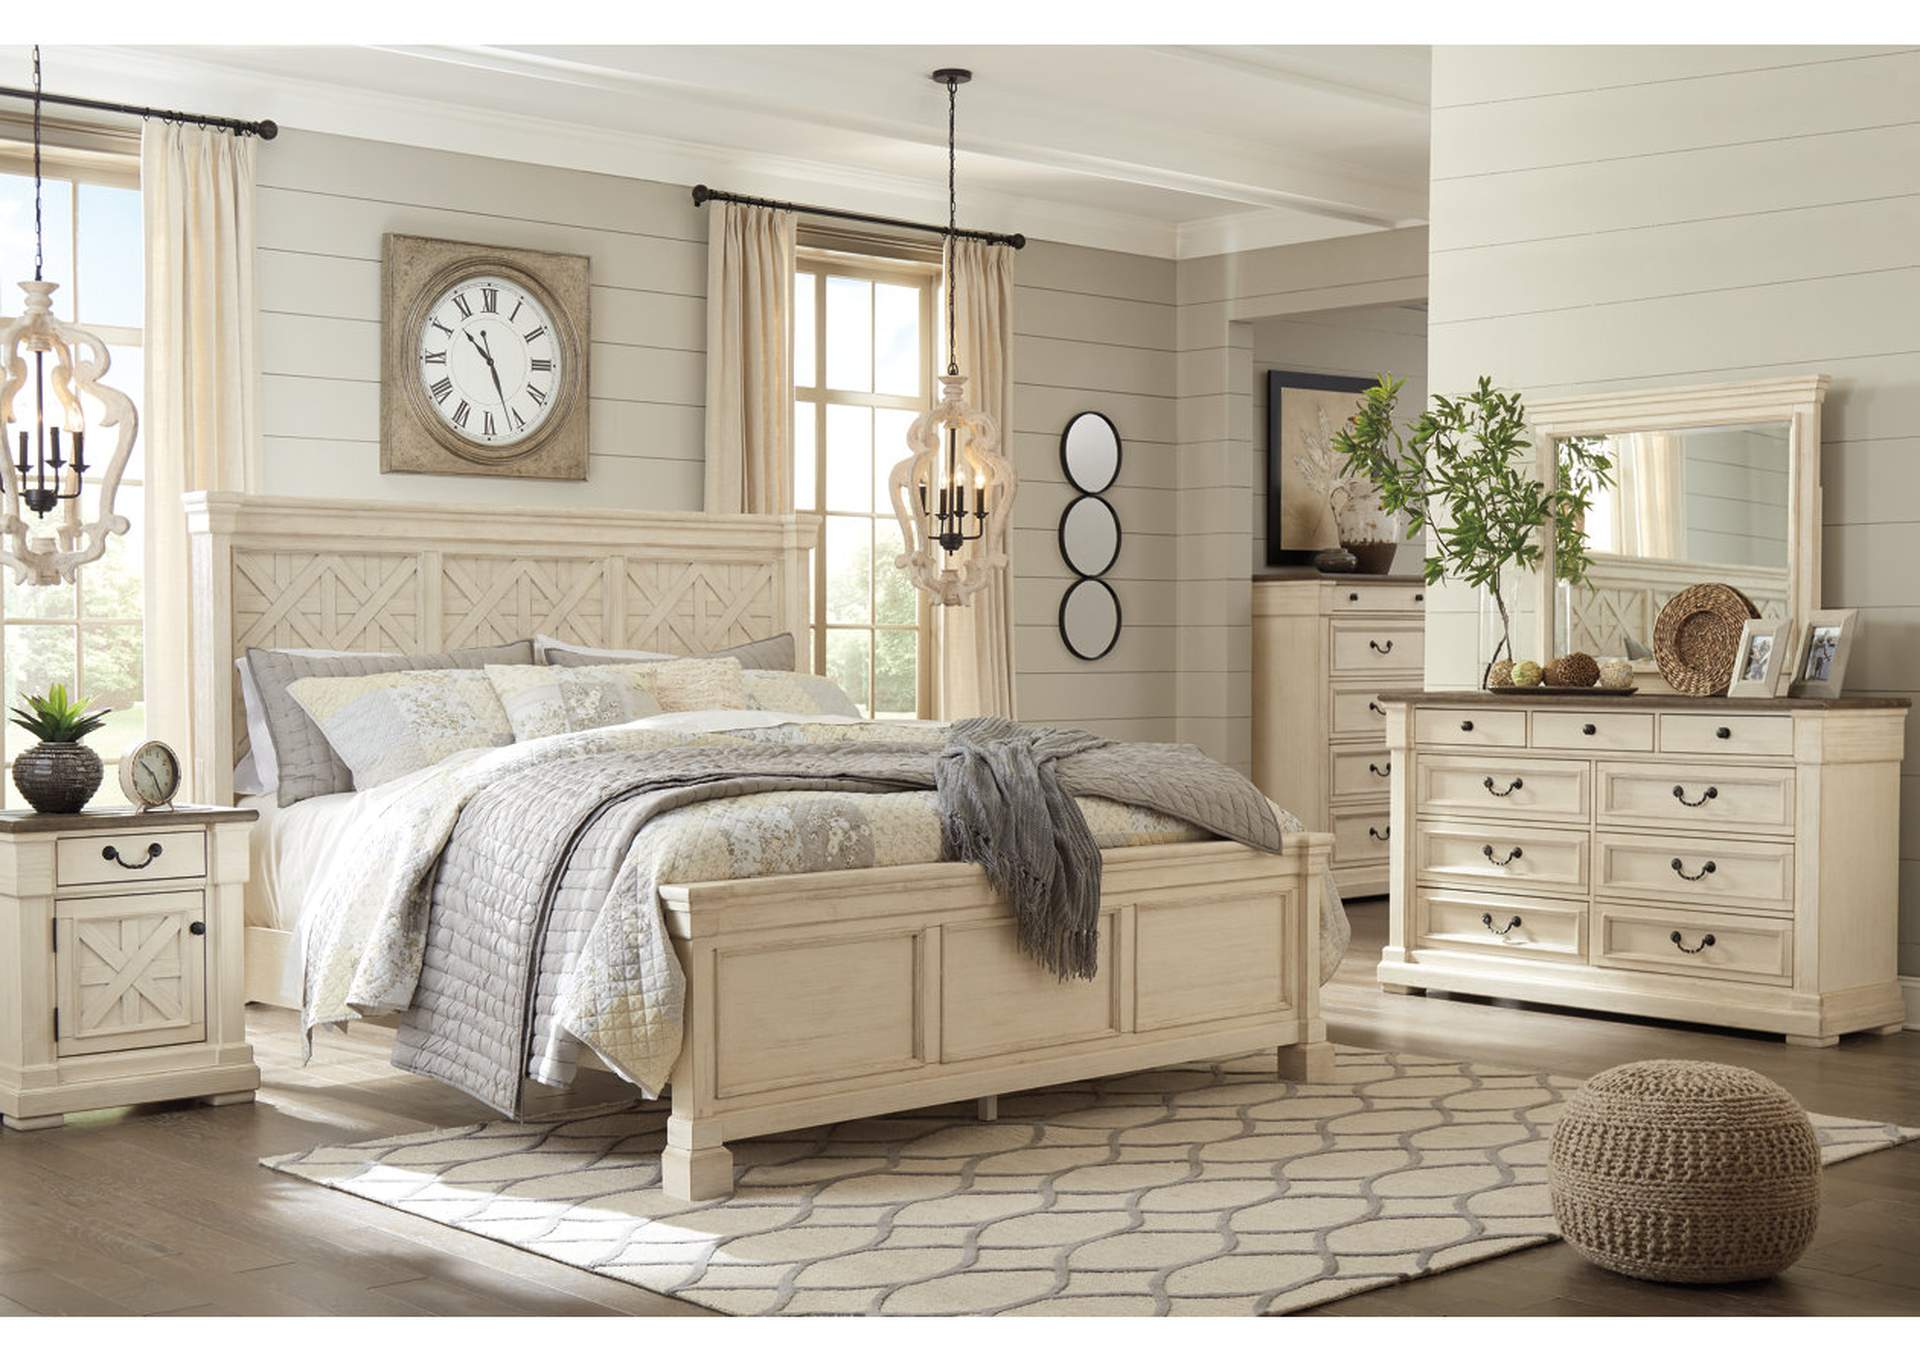 Bolanburg Queen Panel Bed w/Dresser and Mirror